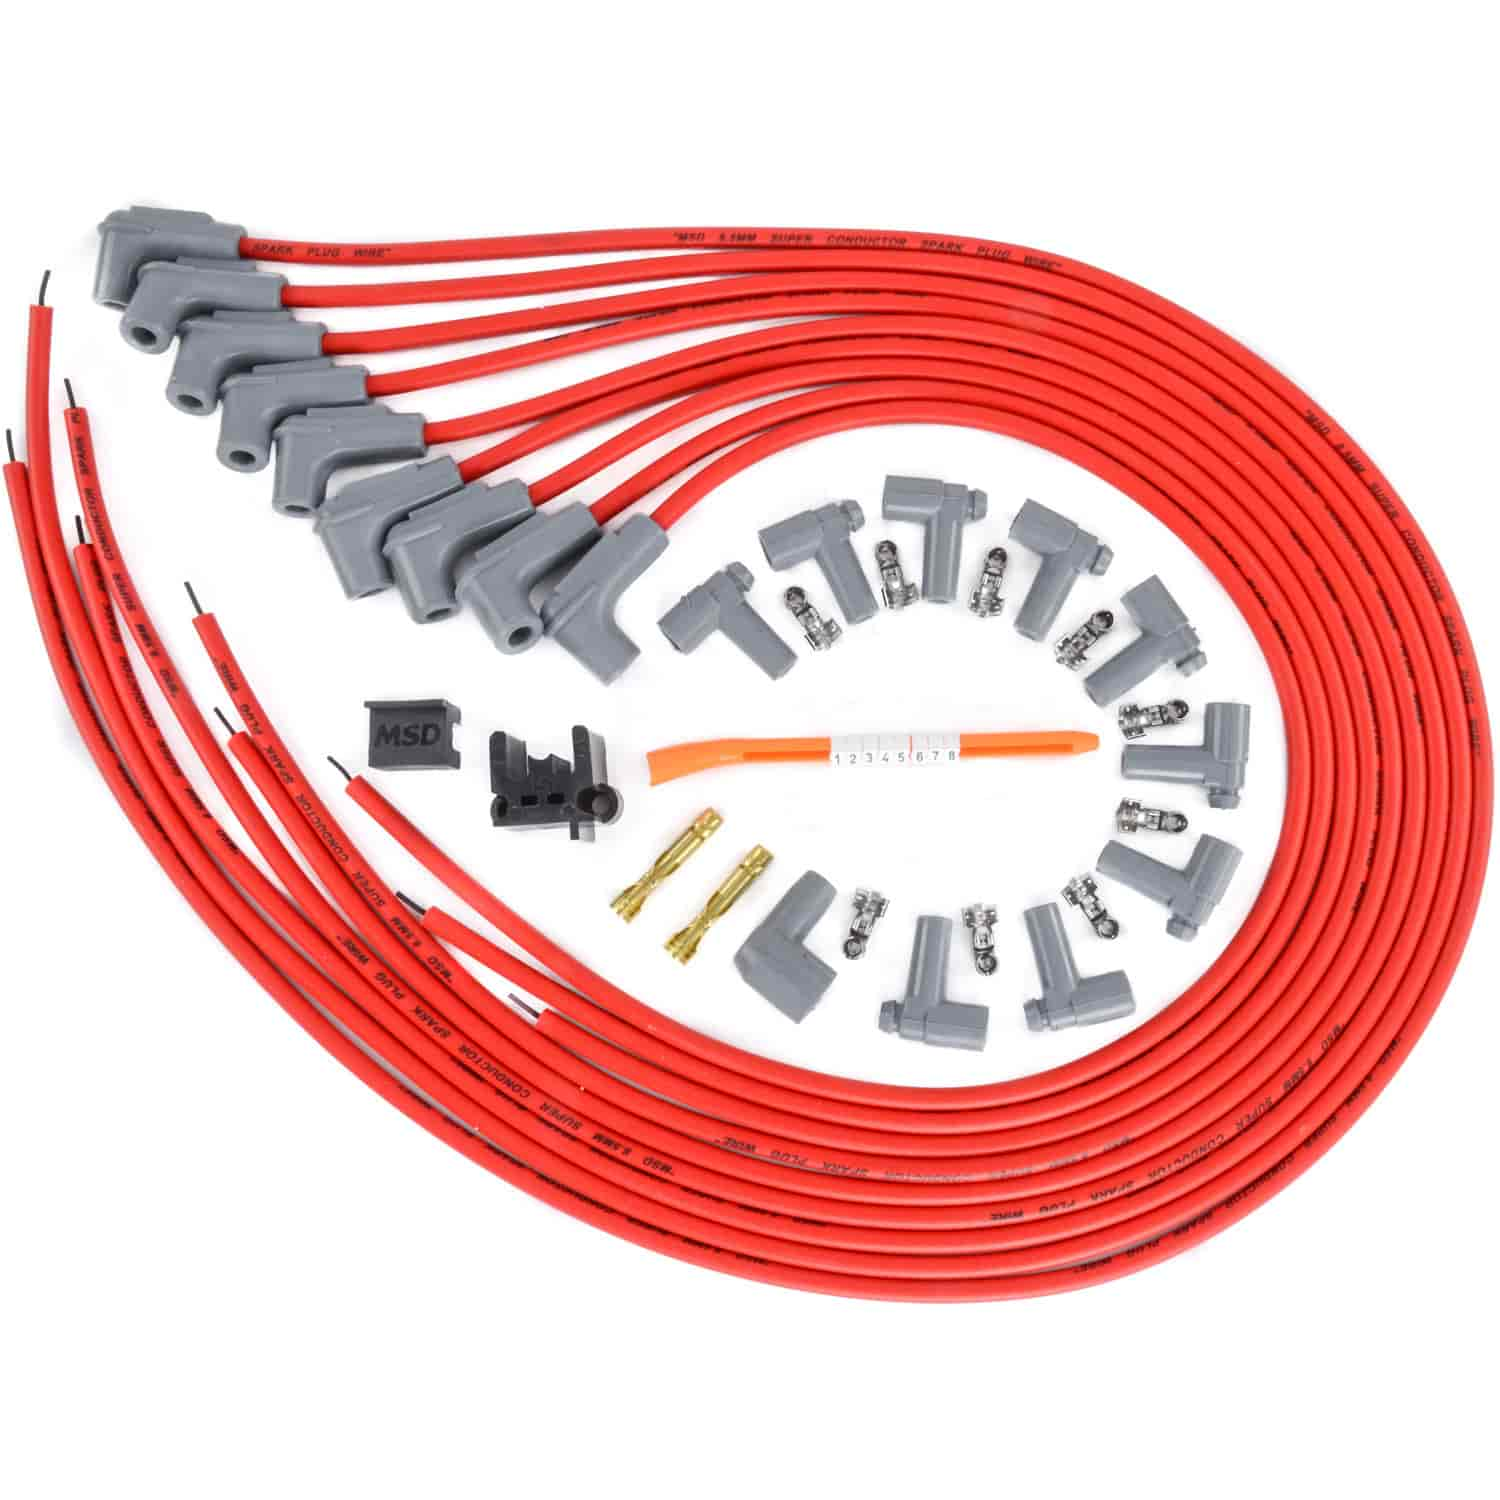 Msd Ignition 31229 Red Universal 85mm Spark Plug Wire Set 8 Wiring Diagram Chev 350